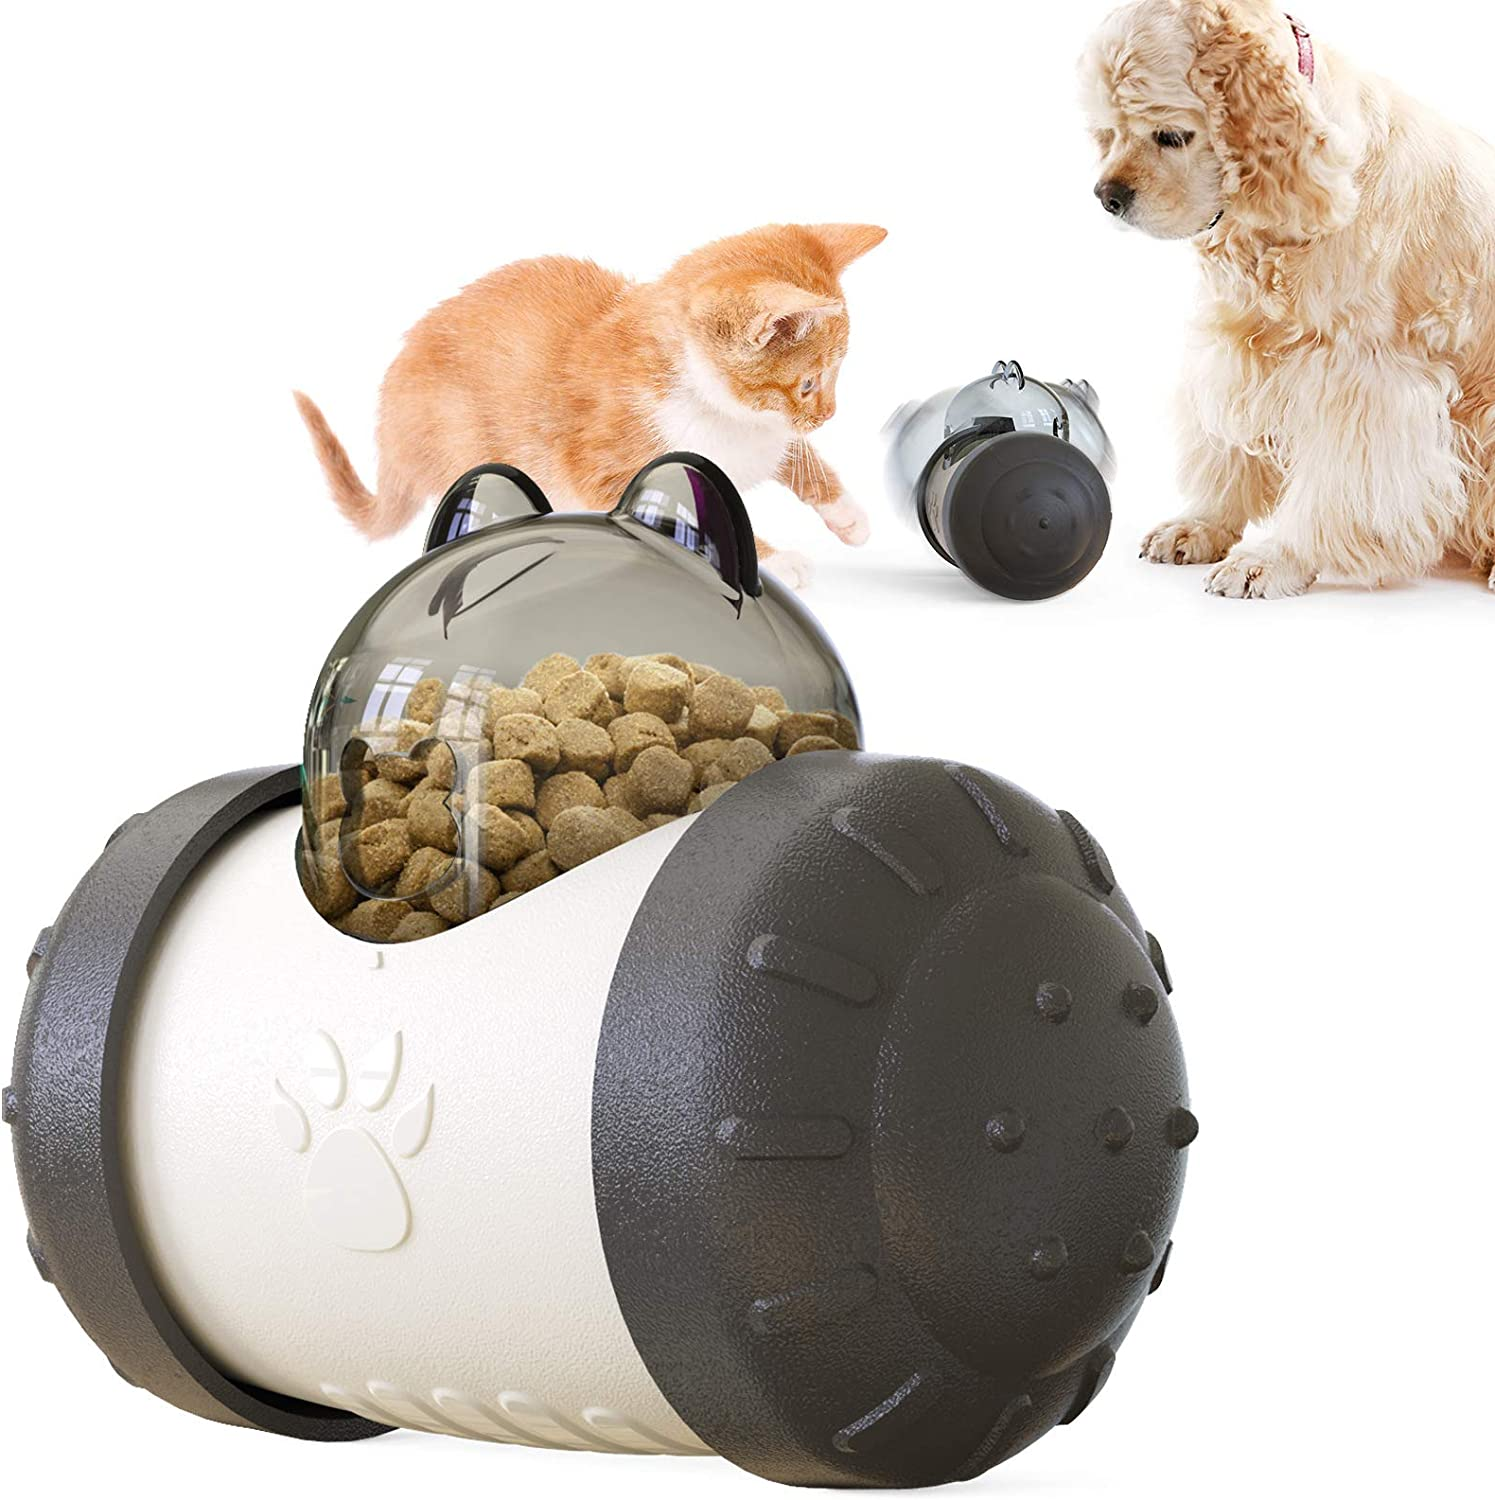 Tumbler Pets Toys Dog Cat Leaking Food Ball Educational Interactive Toys Swing Bear Slow Food Ball Dog Playing Eating Toys